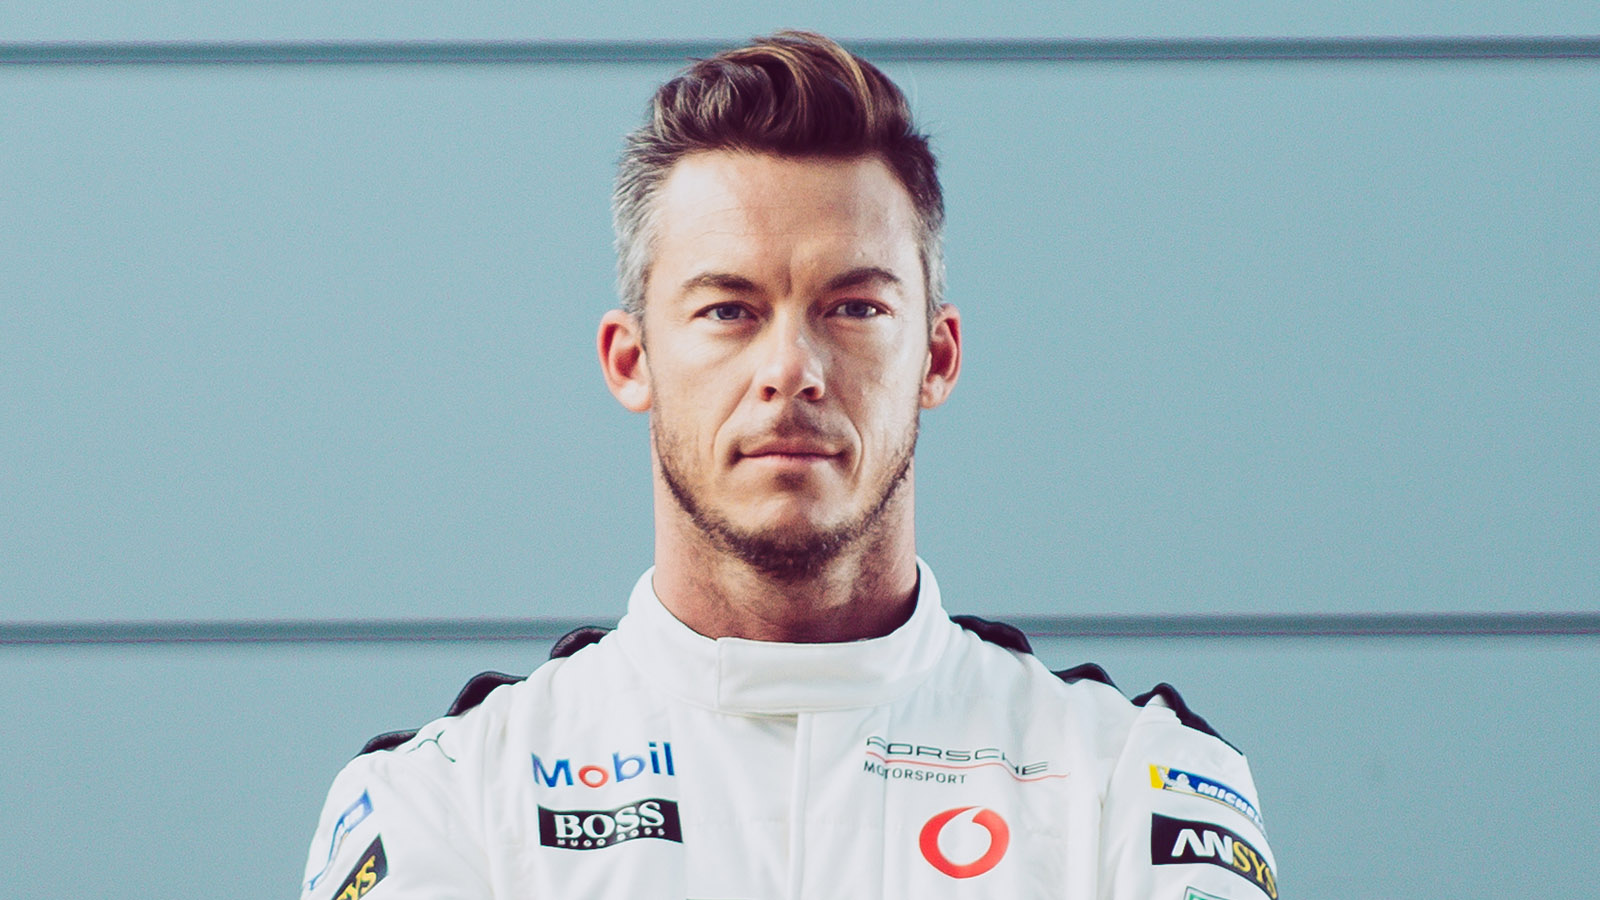 Porsche - André Lotterer (test, development and race driver) GER